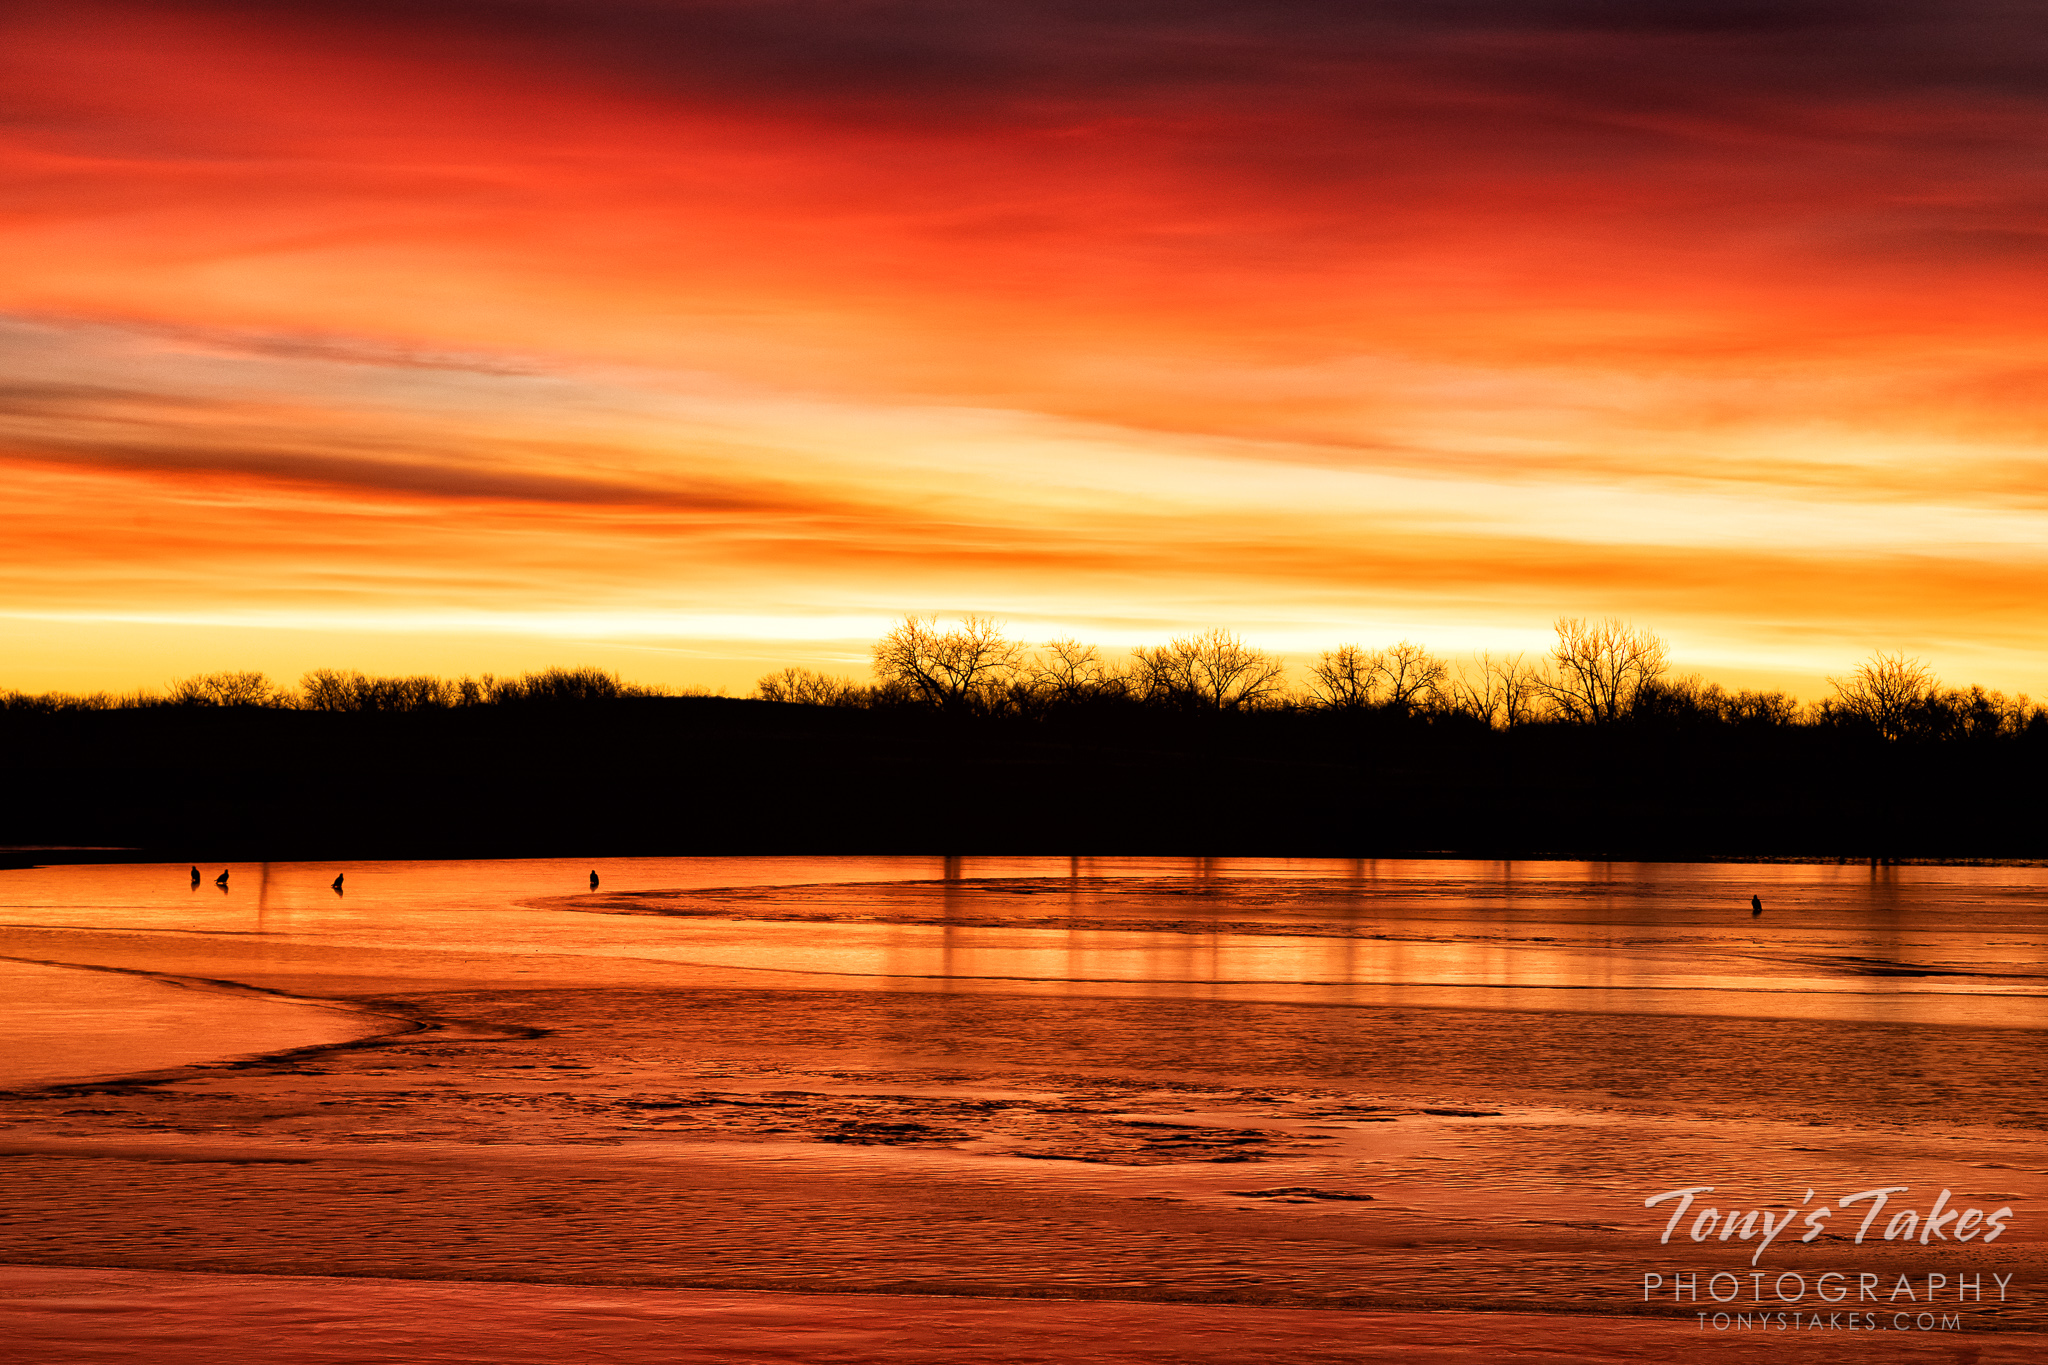 Bald eagles hang out on the ice during a beautiful sunrise on the plains. (© Tony's Takes)